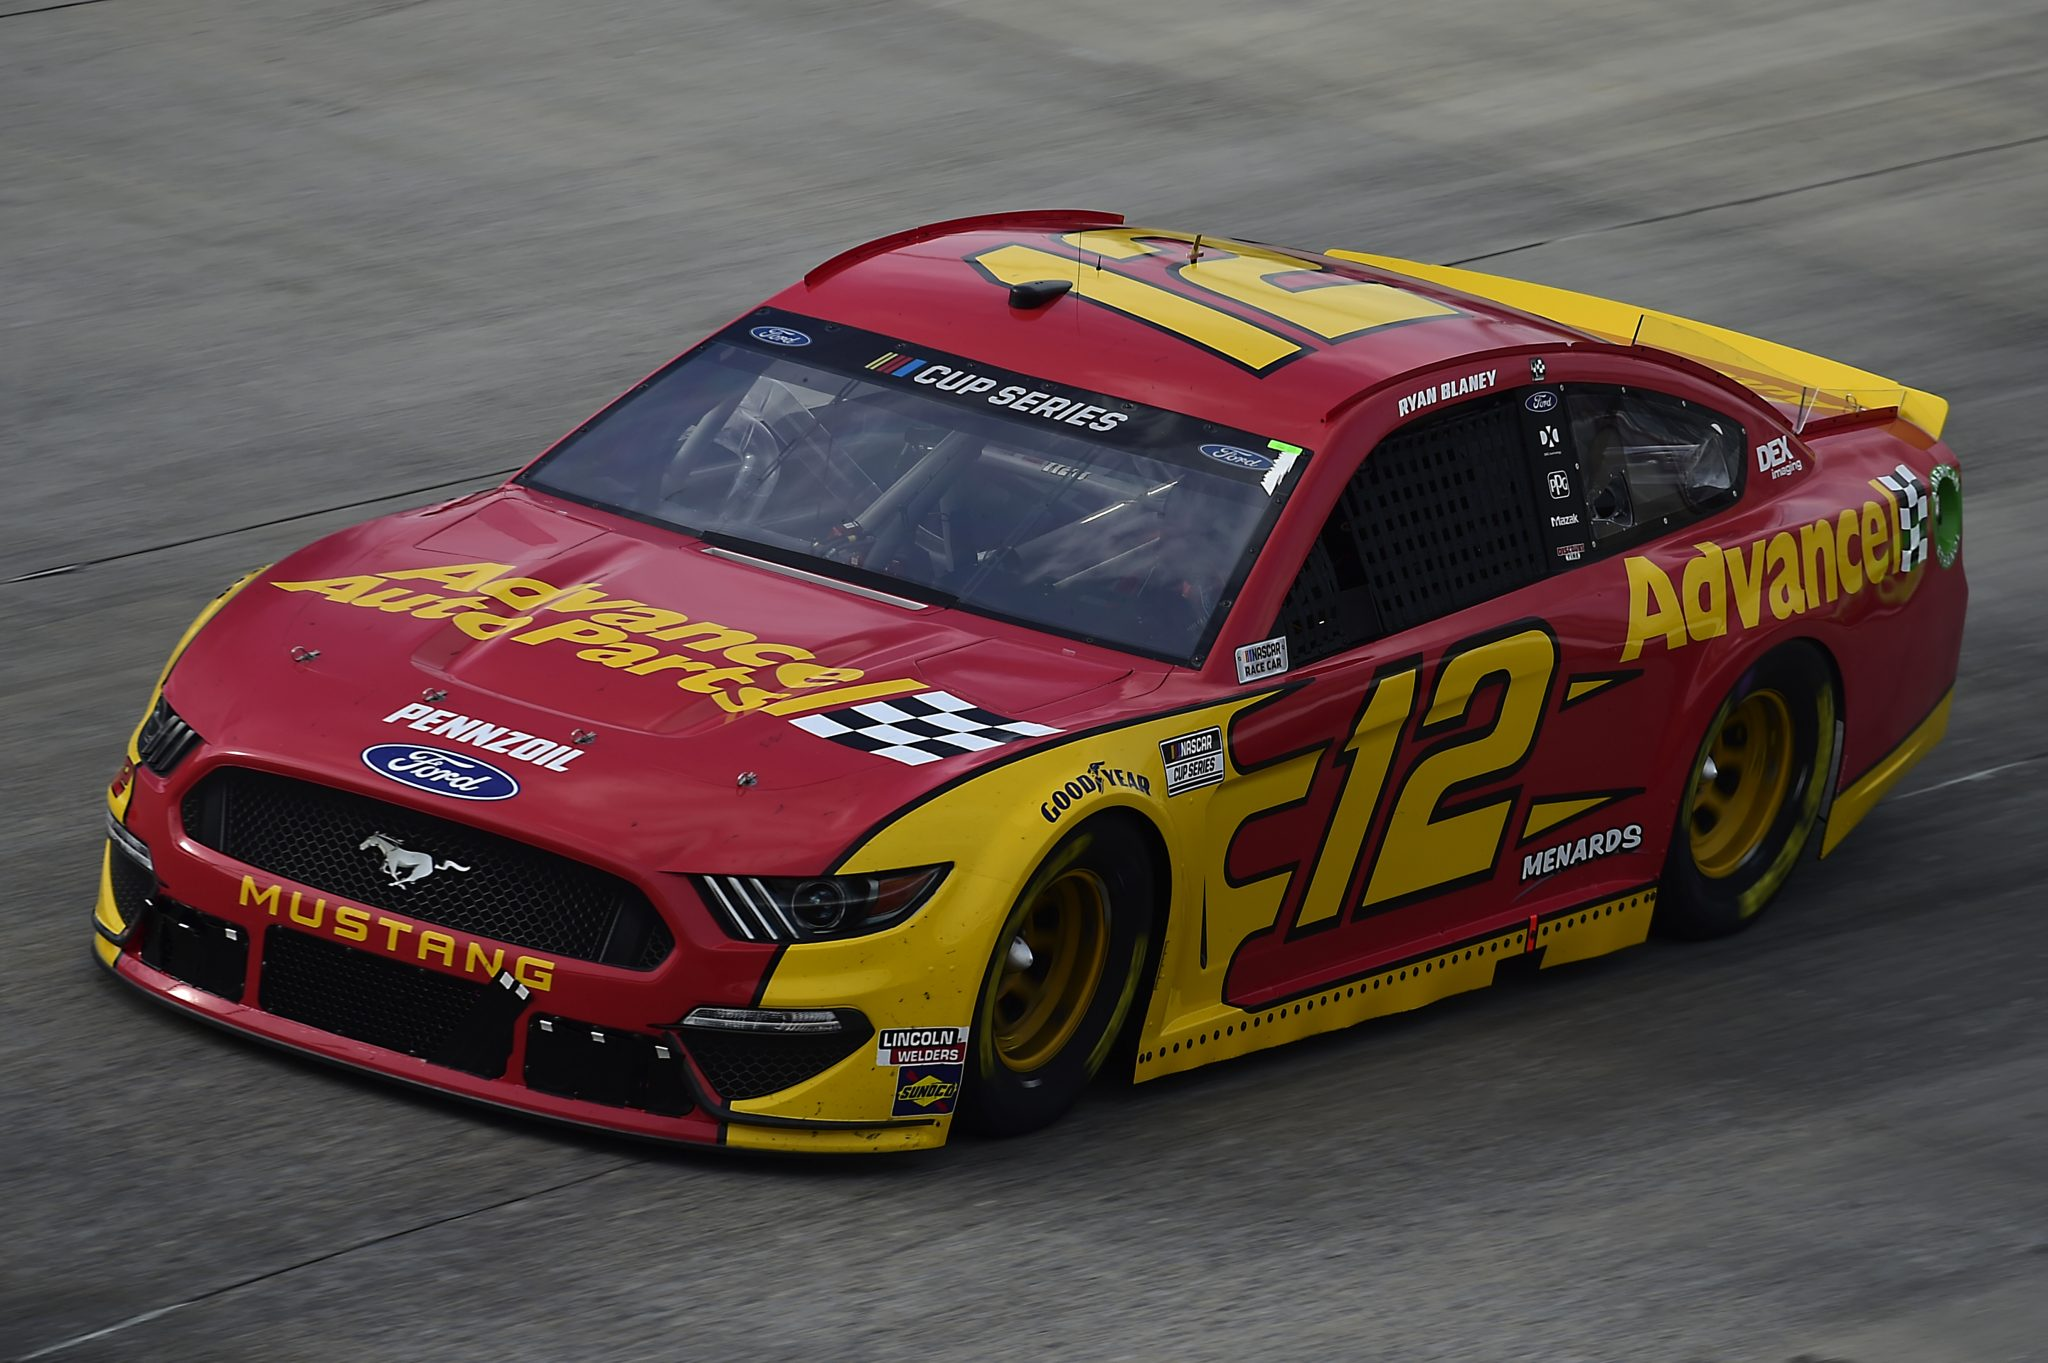 DOVER, DELAWARE - AUGUST 22: Ryan Blaney, driver of the #12 Advance Auto Parts Ford, drives during the NASCAR Cup Series Drydene 311 at Dover International Speedway on August 22, 2020 in Dover, Delaware. (Photo by Jared C. Tilton/Getty Images) | Getty Images